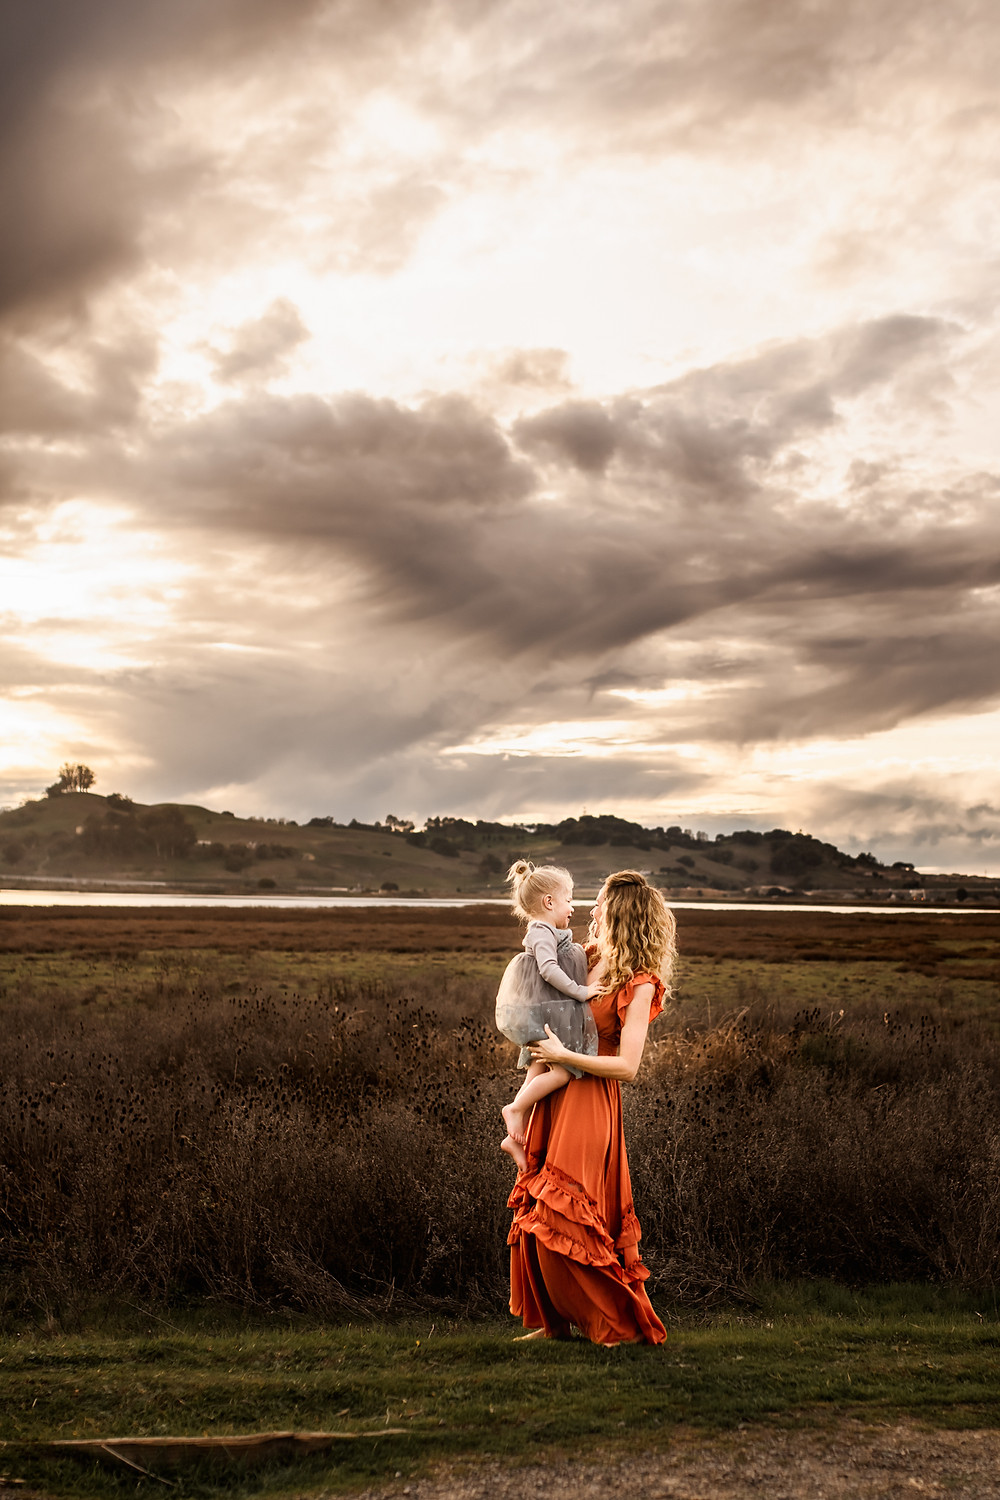 mother holding her baby girl with dramatic clouds and mountains in the background, mother and daughter spinning together, family photographer for Sonoma County, Diana Jex Photography